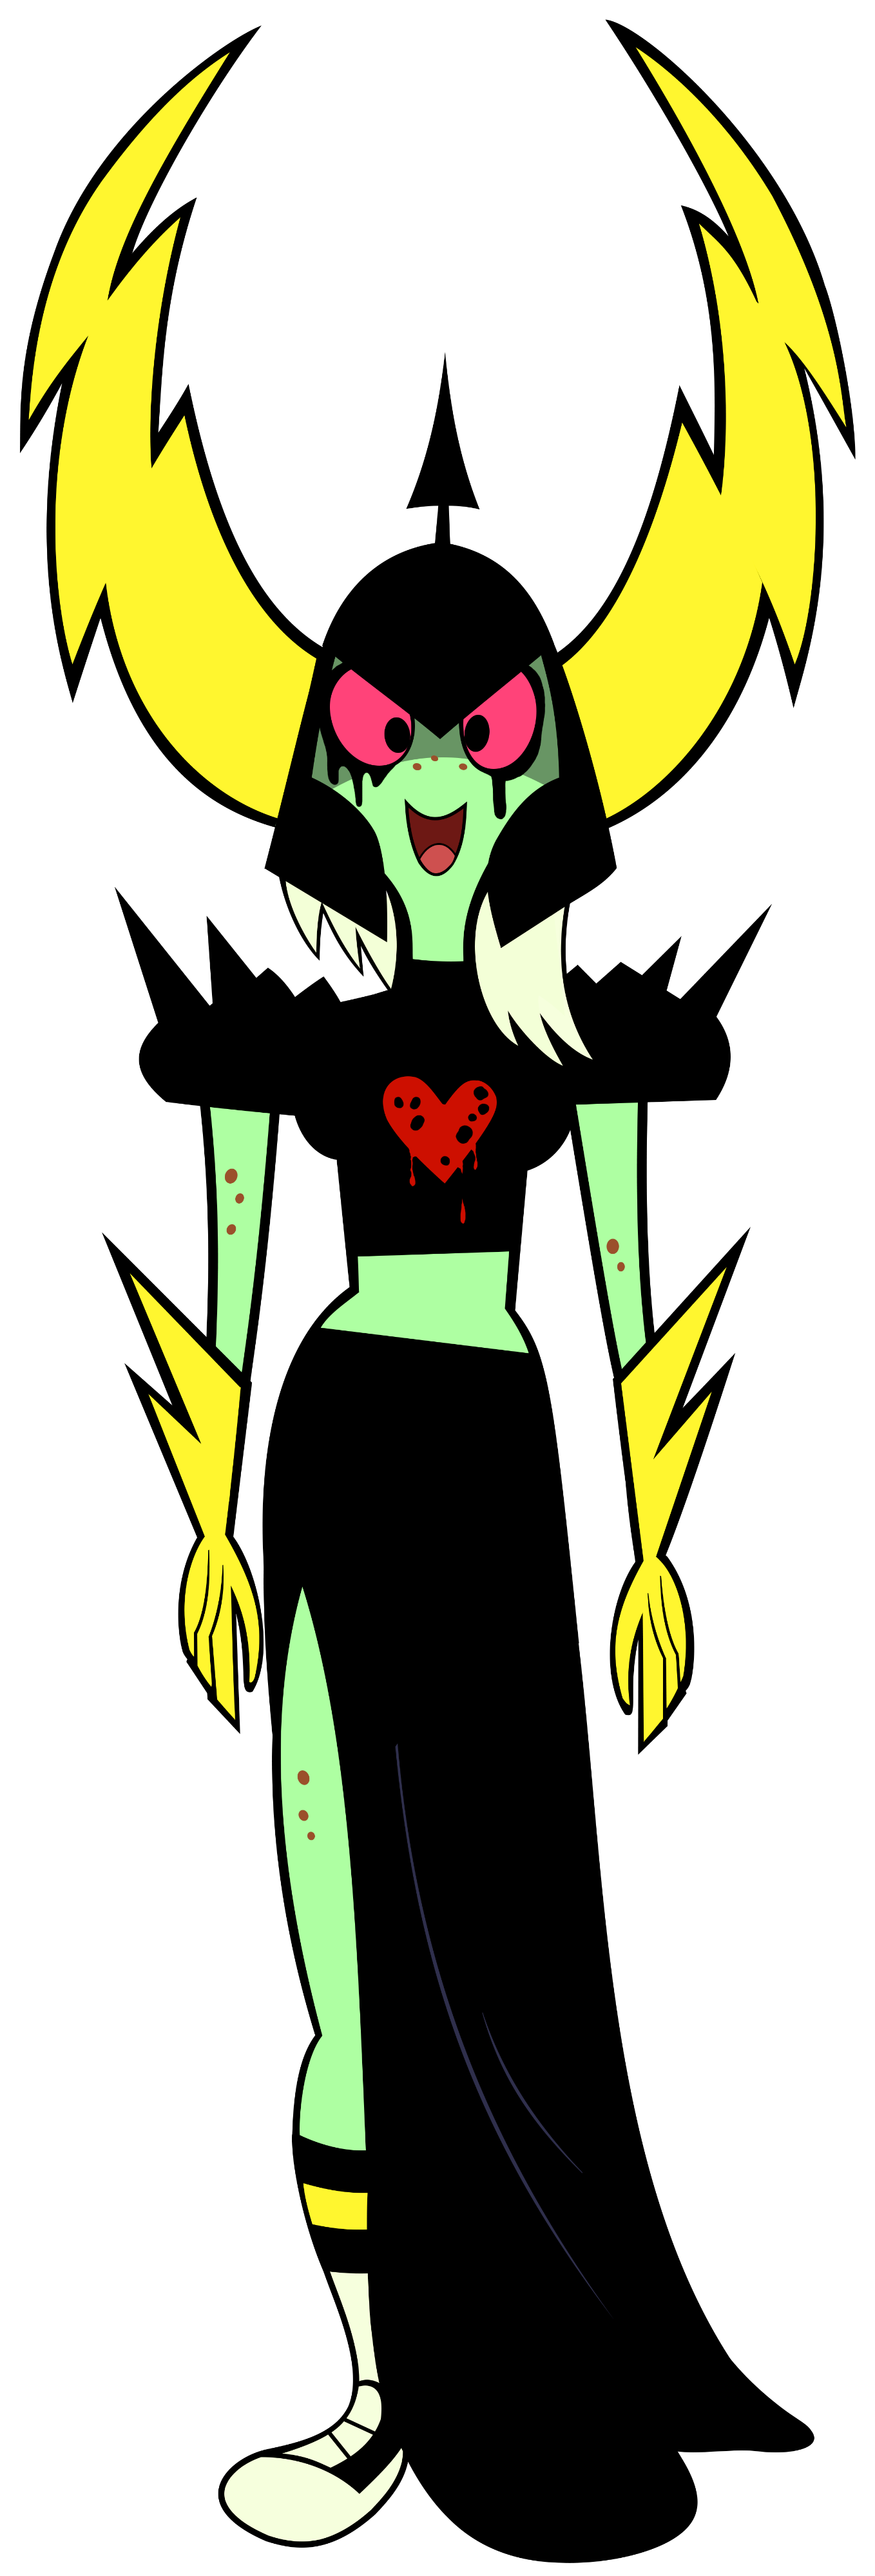 A female dominator on the side